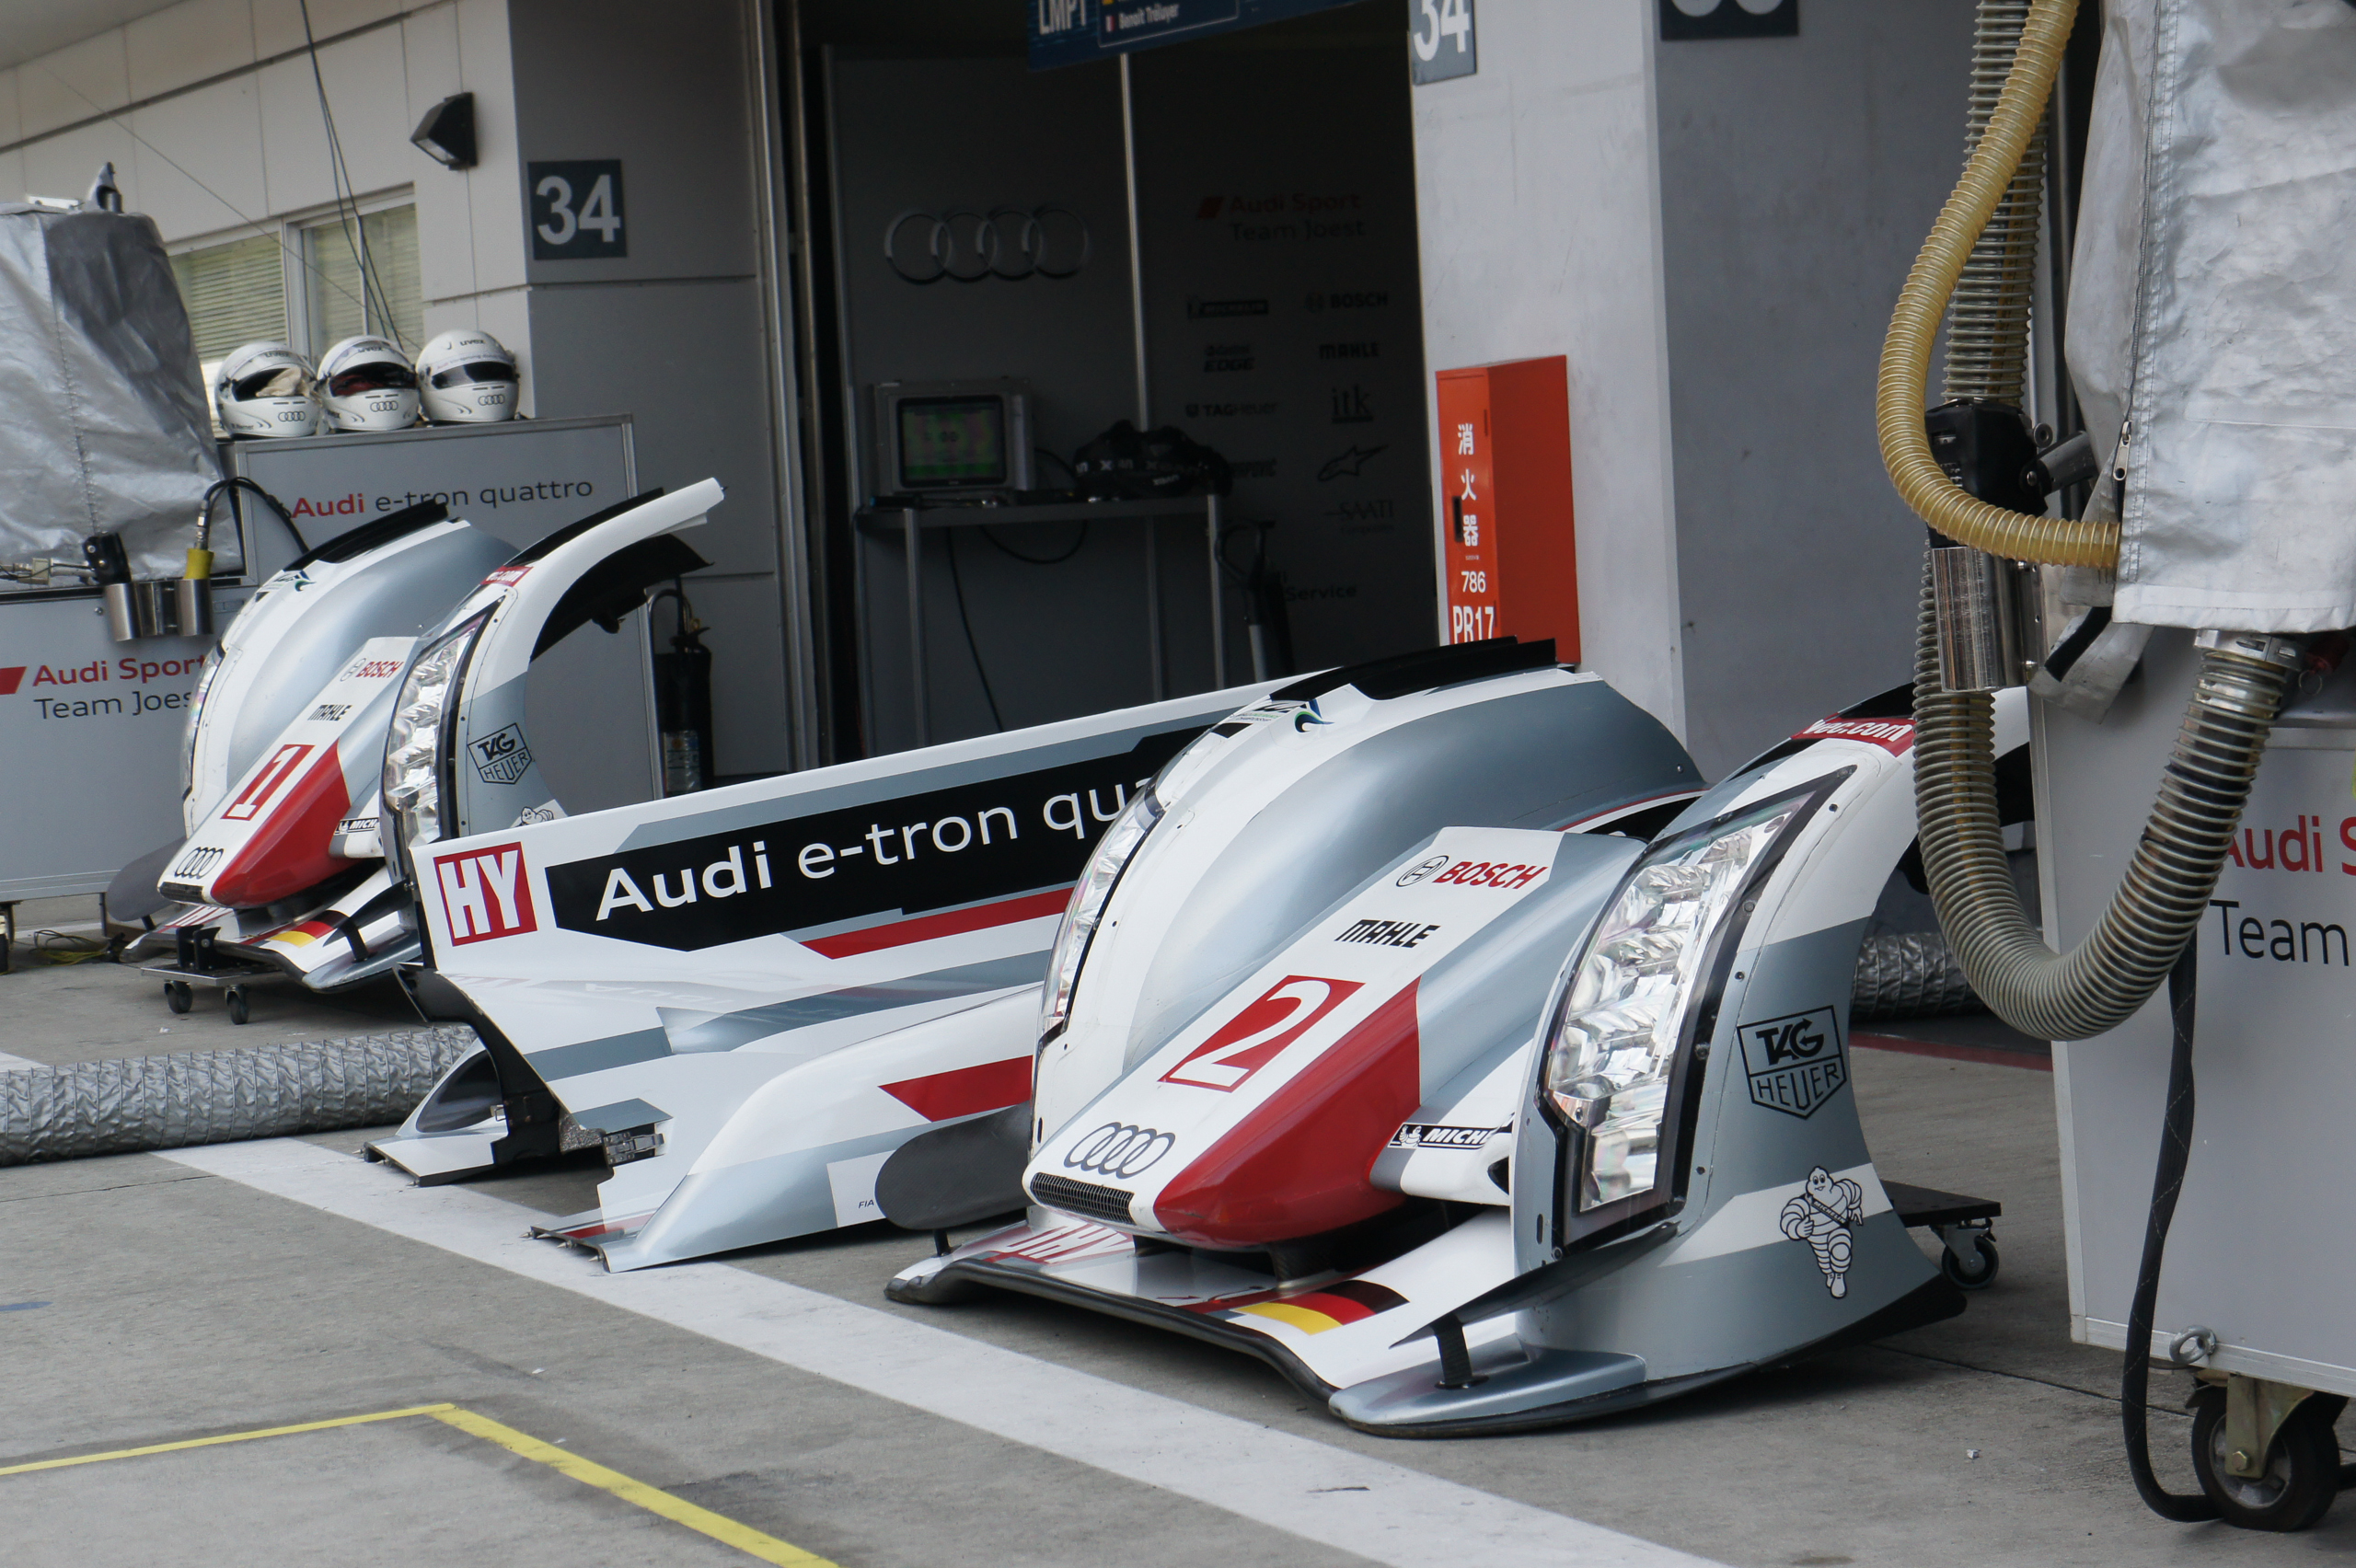 http://upload.wikimedia.org/wikipedia/commons/1/16/Audi_R18_e-tron_quattro_front_noses_2012_WEC_Fuji.jpg